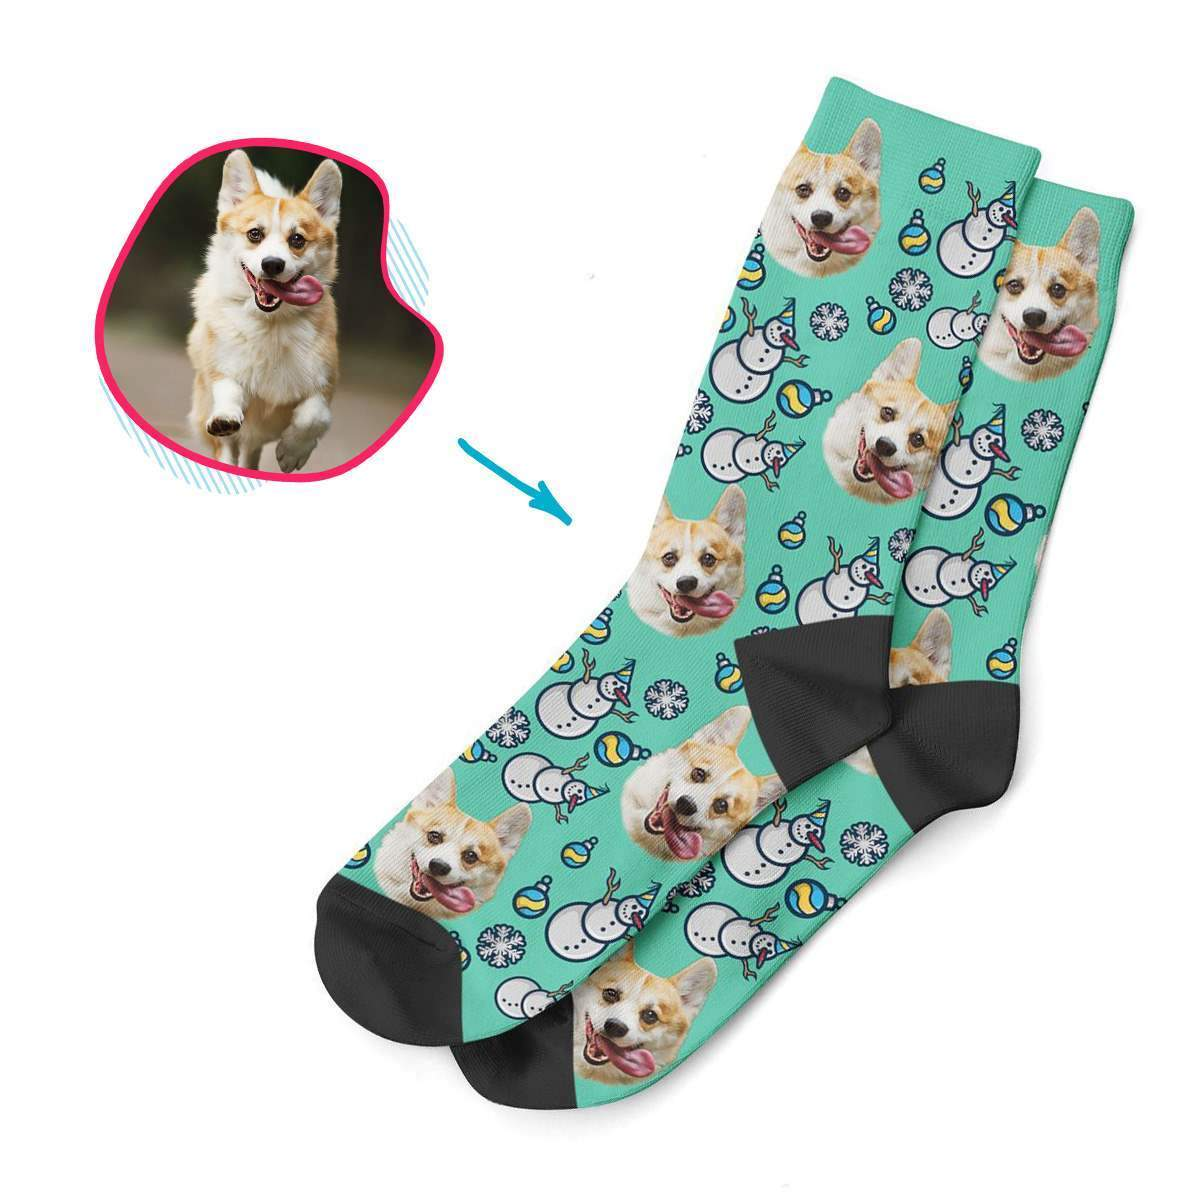 mint Snowman socks personalized with photo of face printed on them